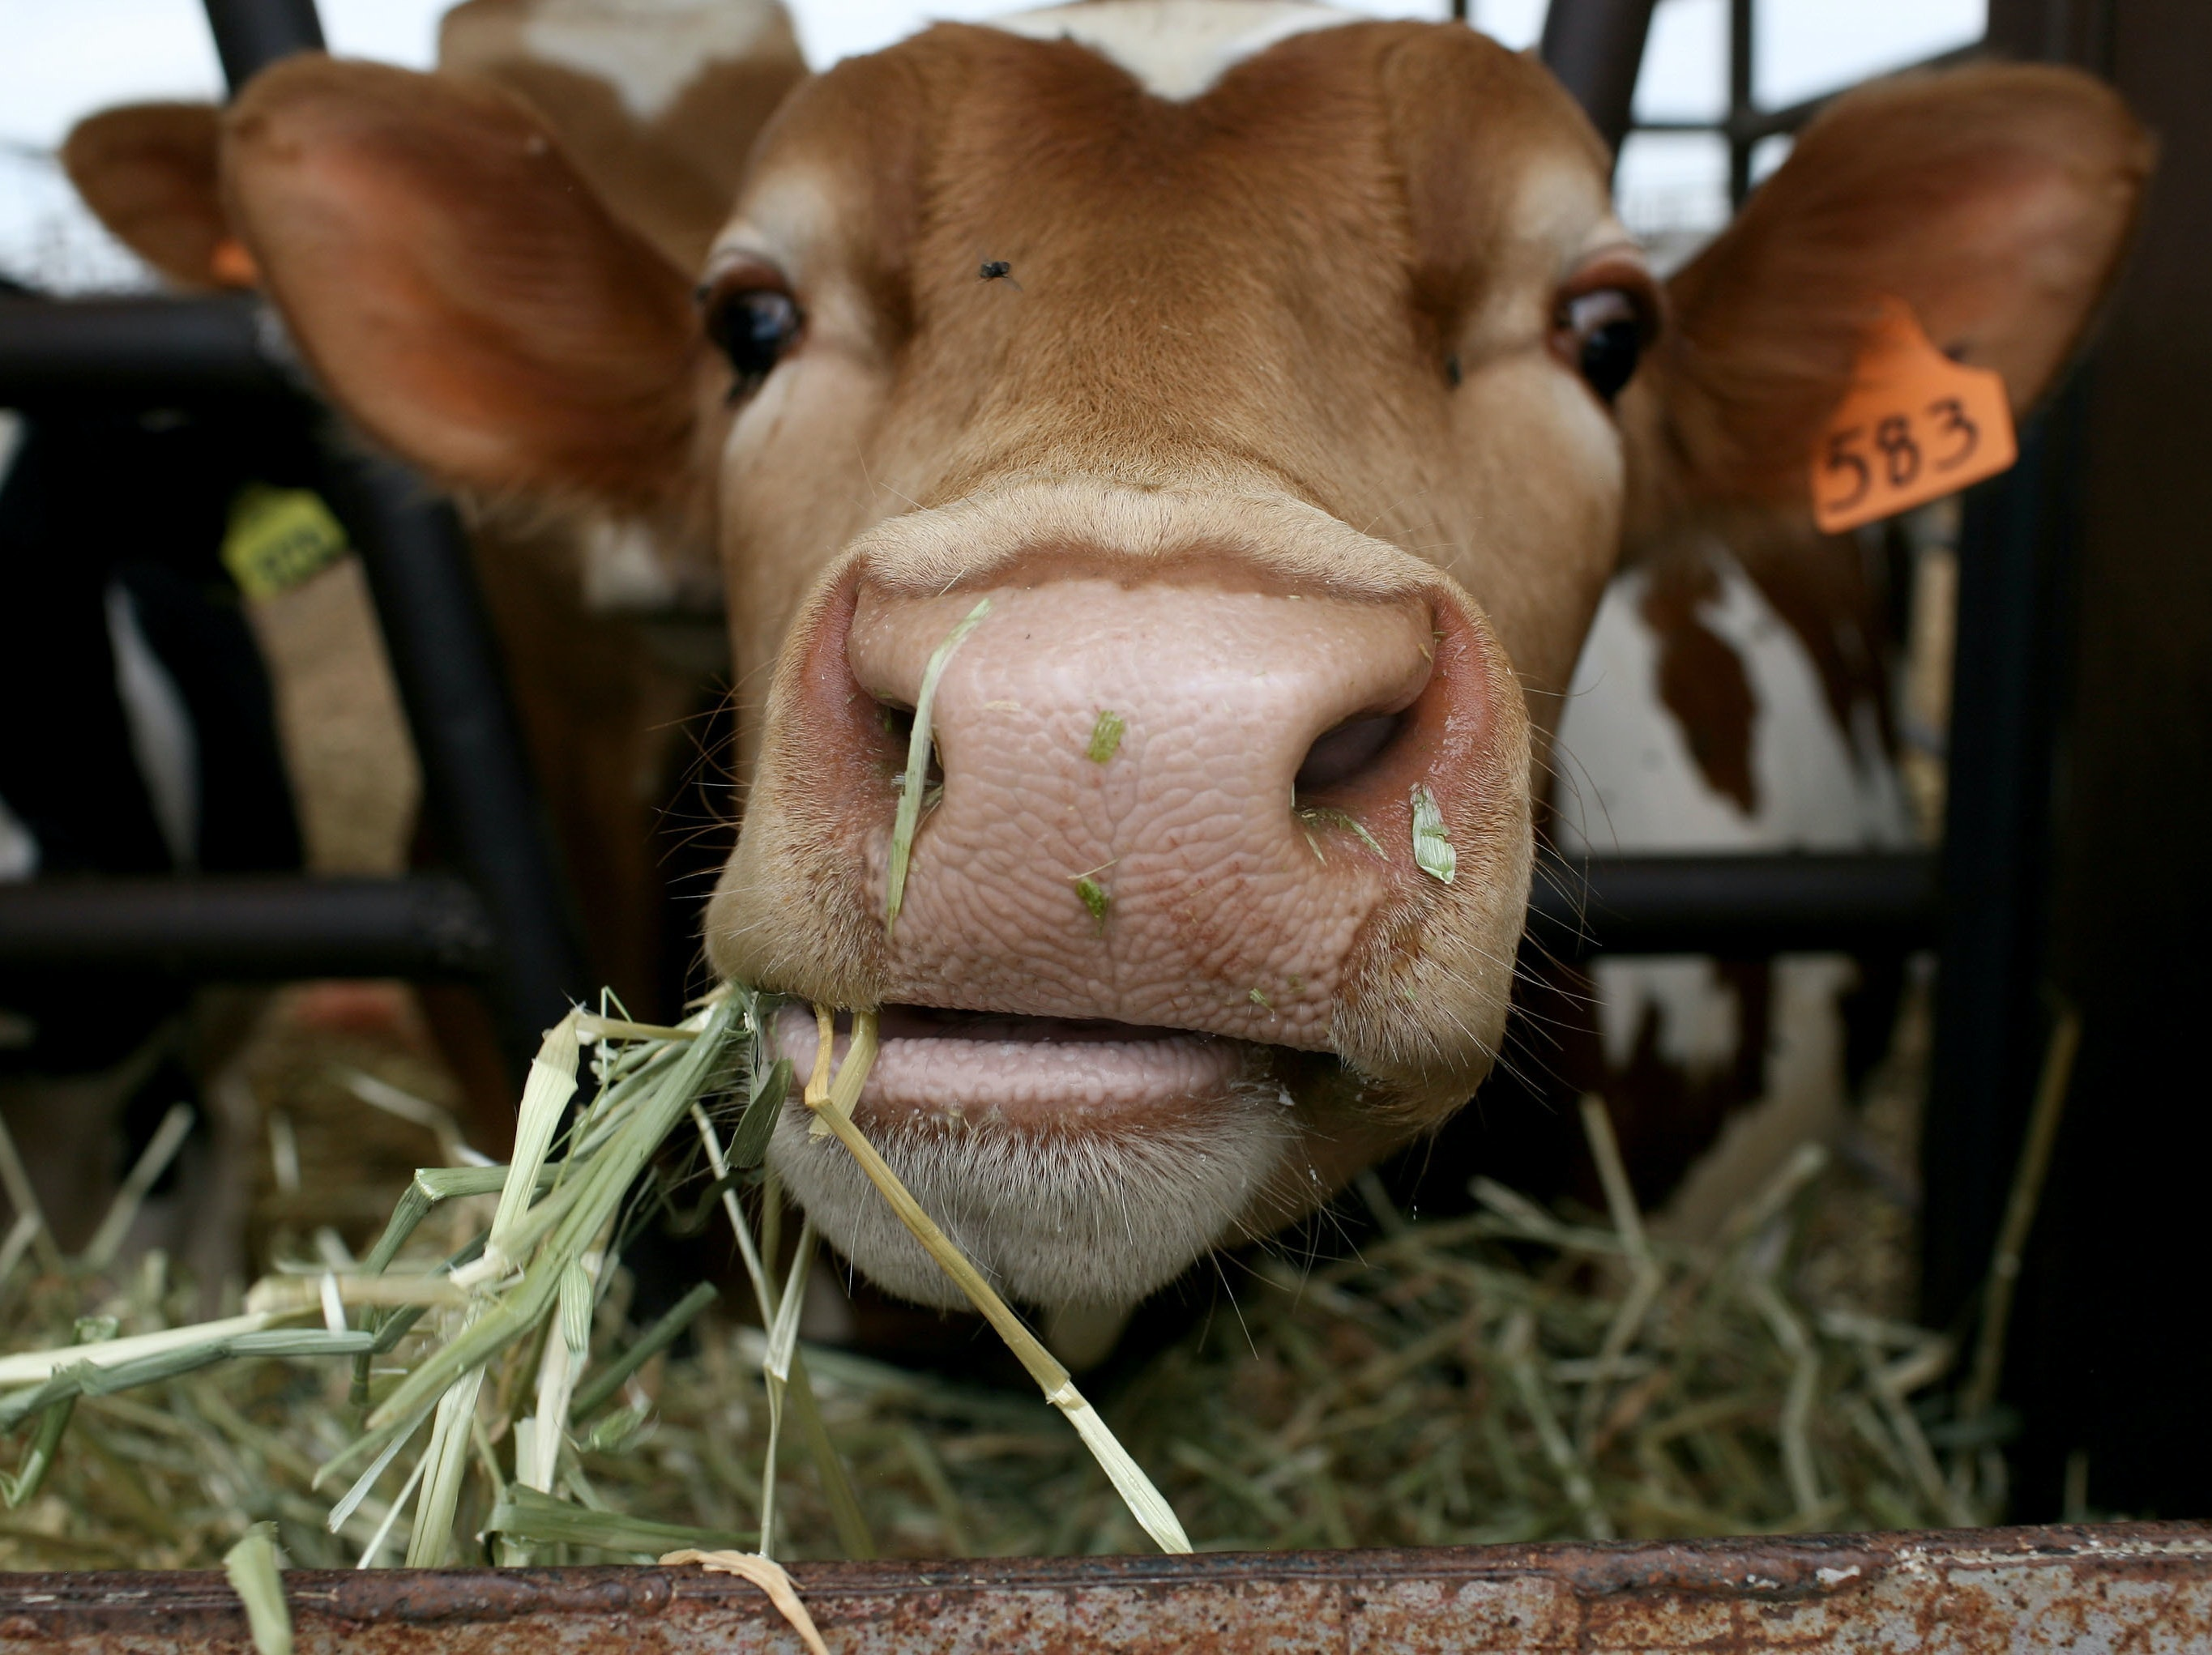 Seaweed could reduce the methane content in cow farts.